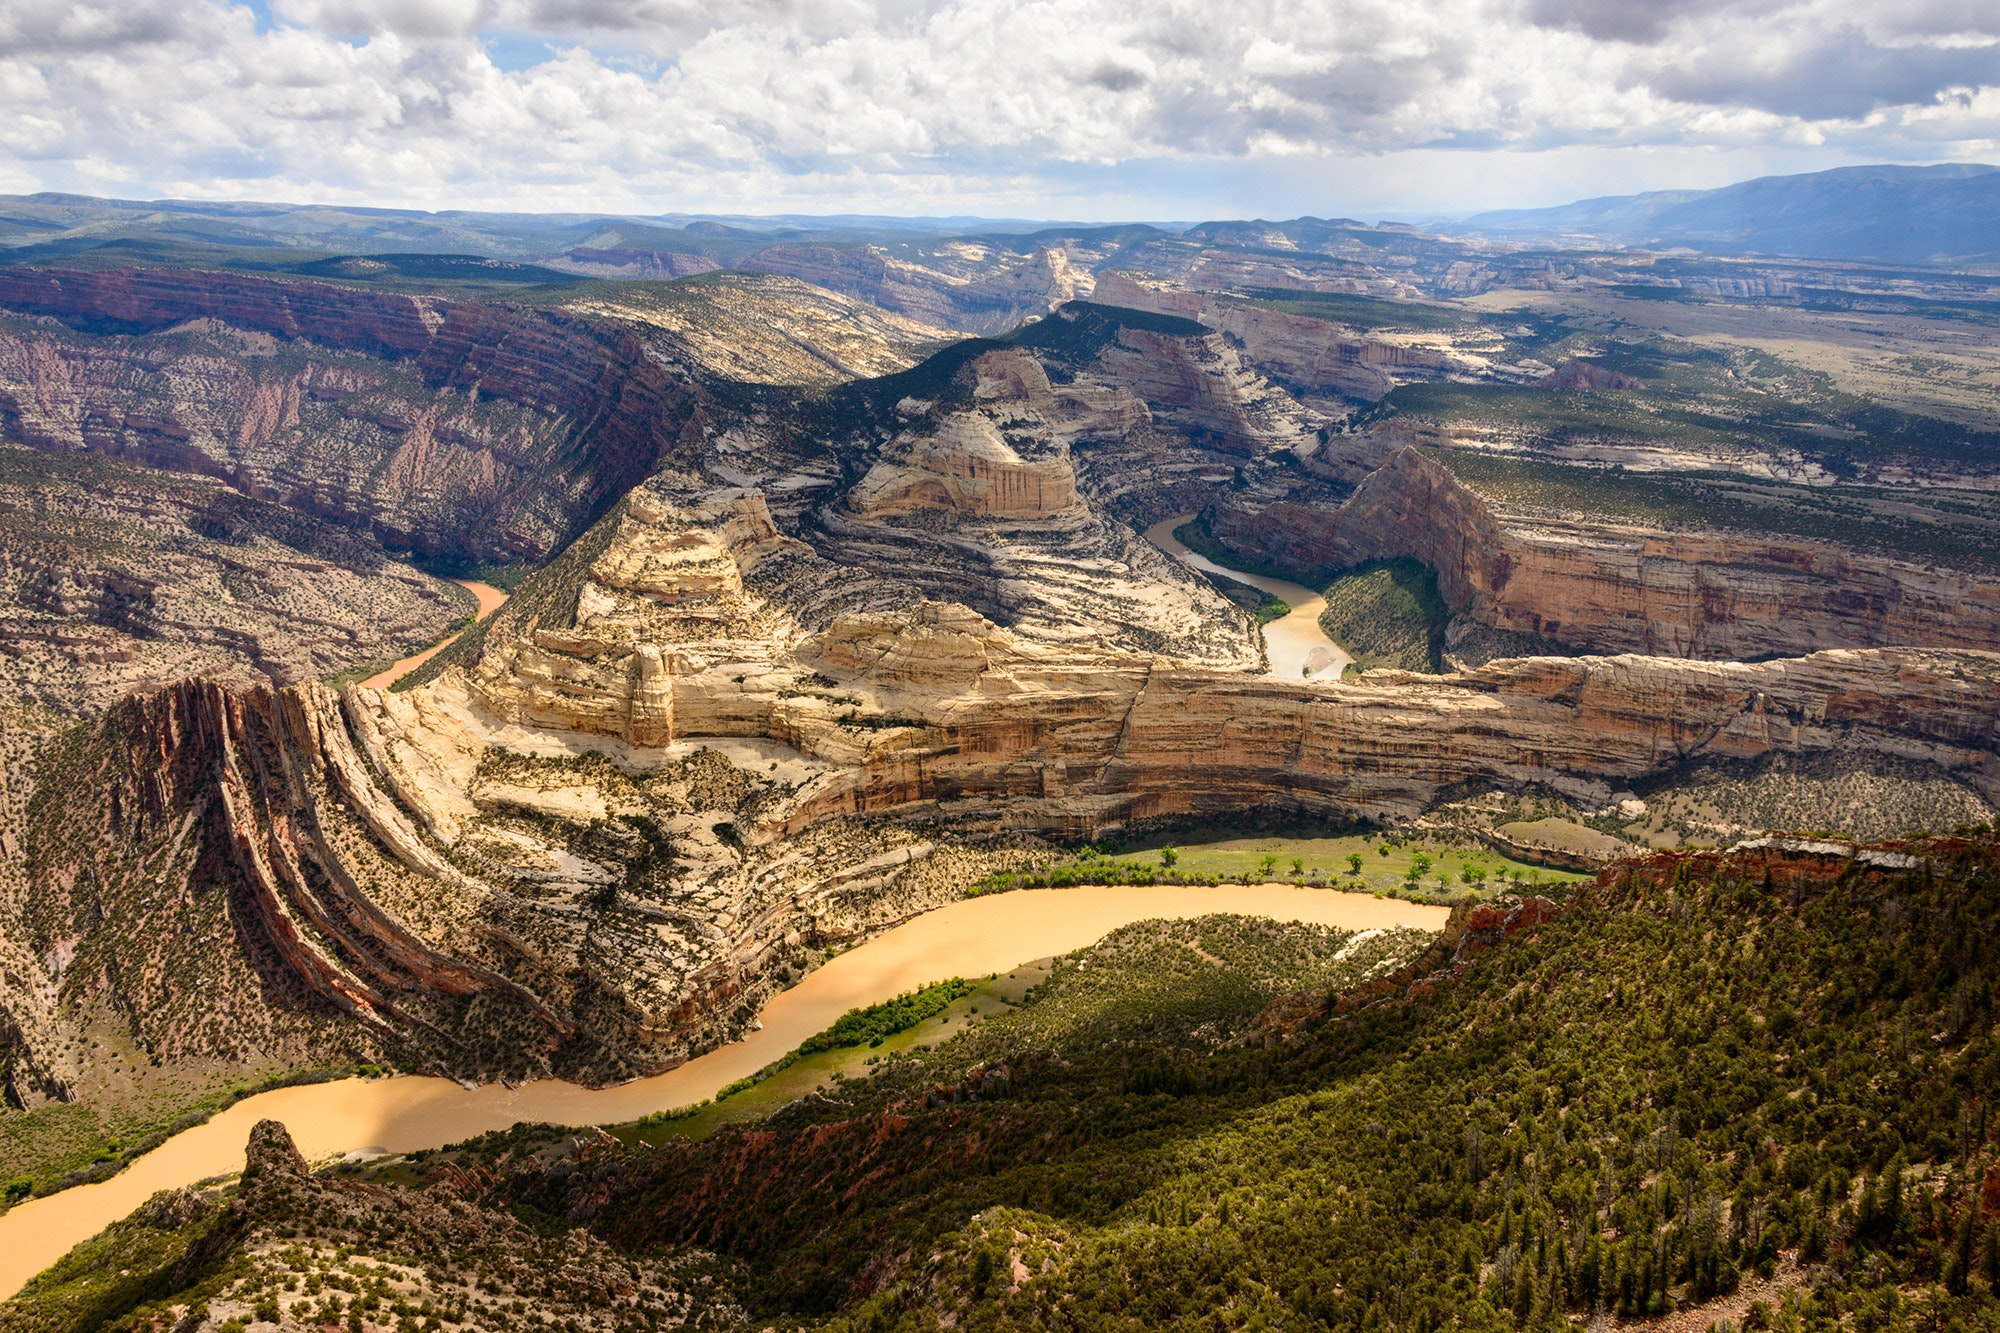 Dinosaur National Monument offers archaeological remains and stunning canyon views.